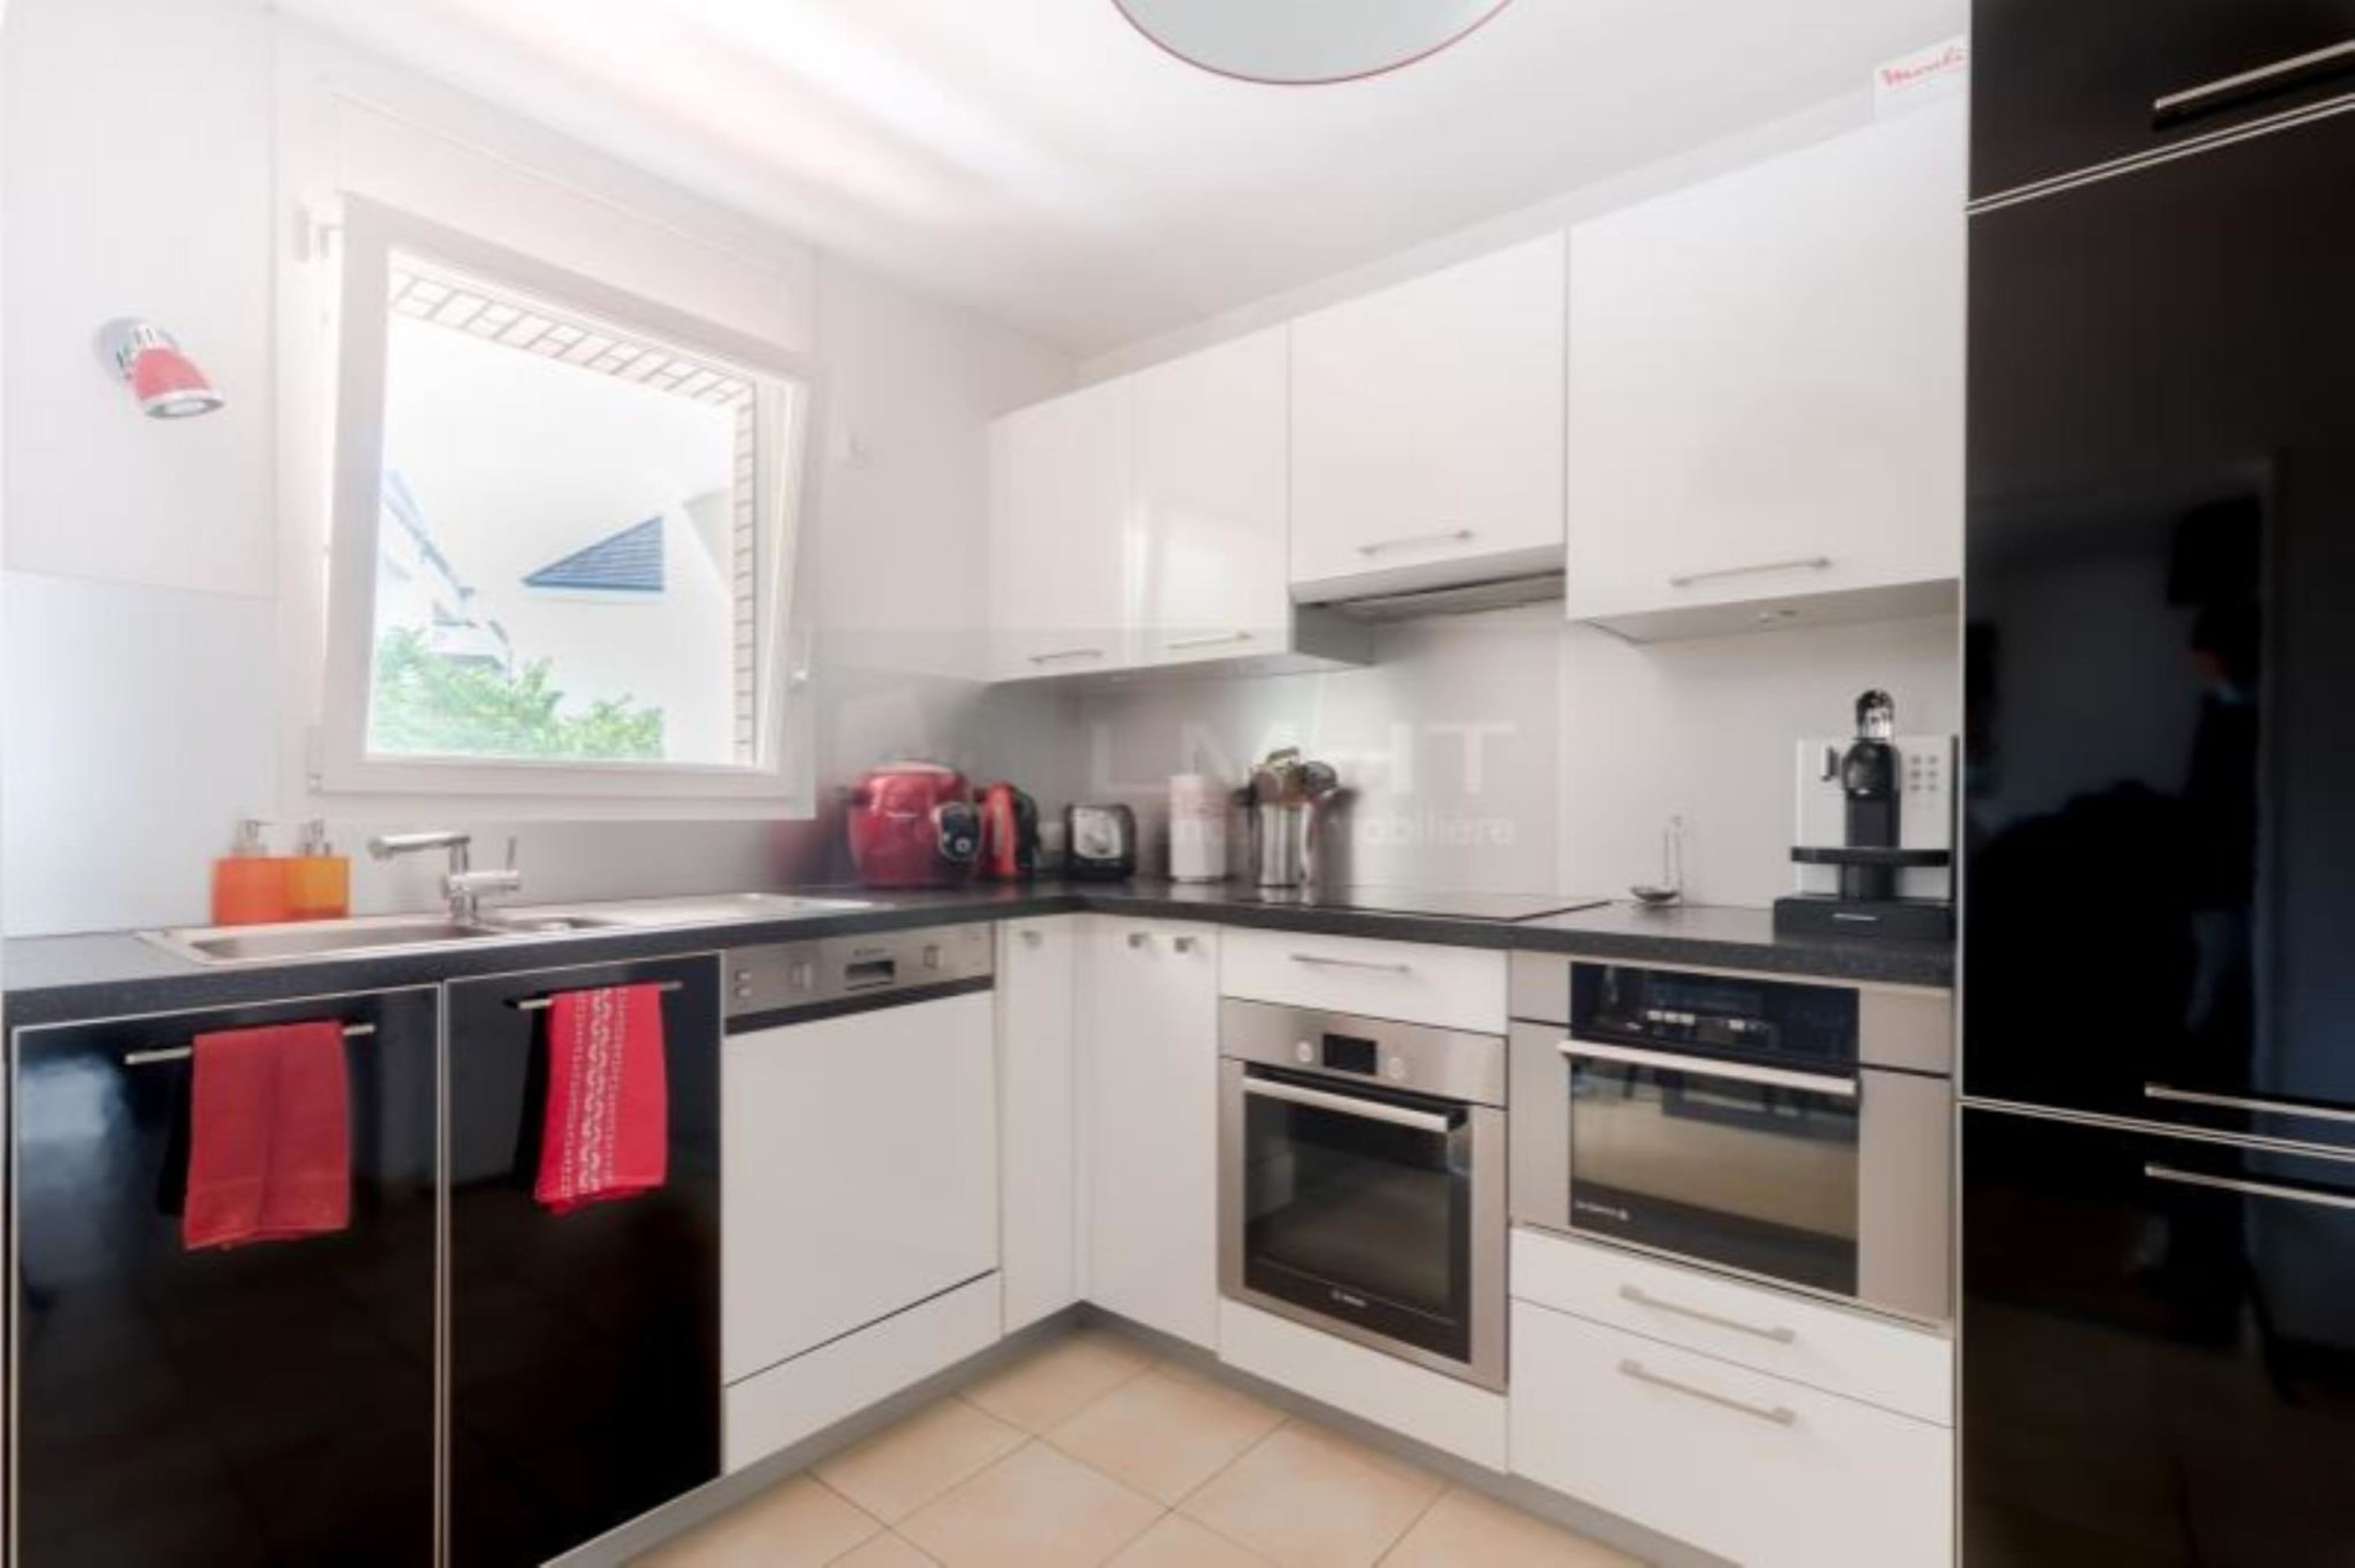 agence immobilière sevres 92 le chesnay 78 achat vente location appartement maison immobilier LMHT ANF ZXOXVXTQ